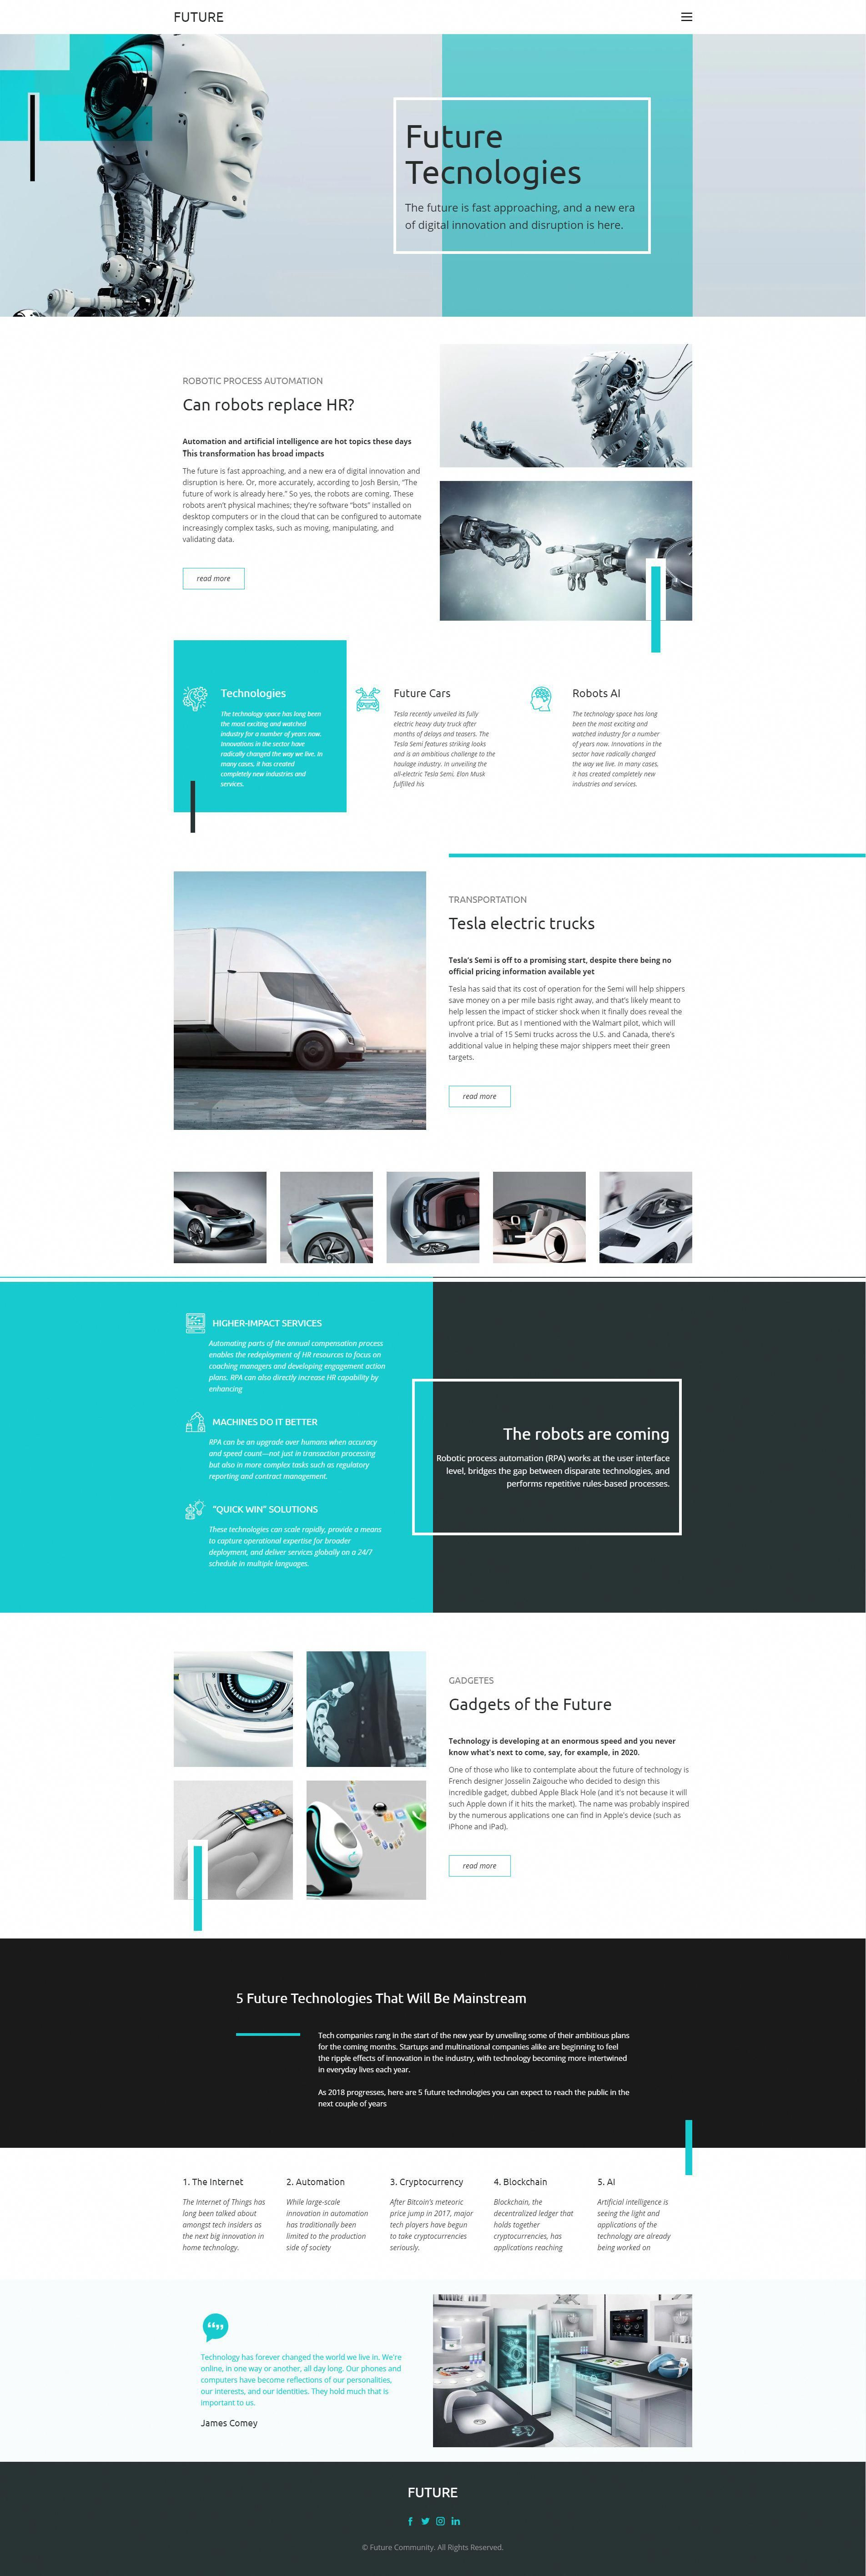 Nicepage Is A New Powerful Web Design Tool And An Easy To Use Builder For Your Websites Blogs And T Web Design Tools Web Development Design Web Design Company